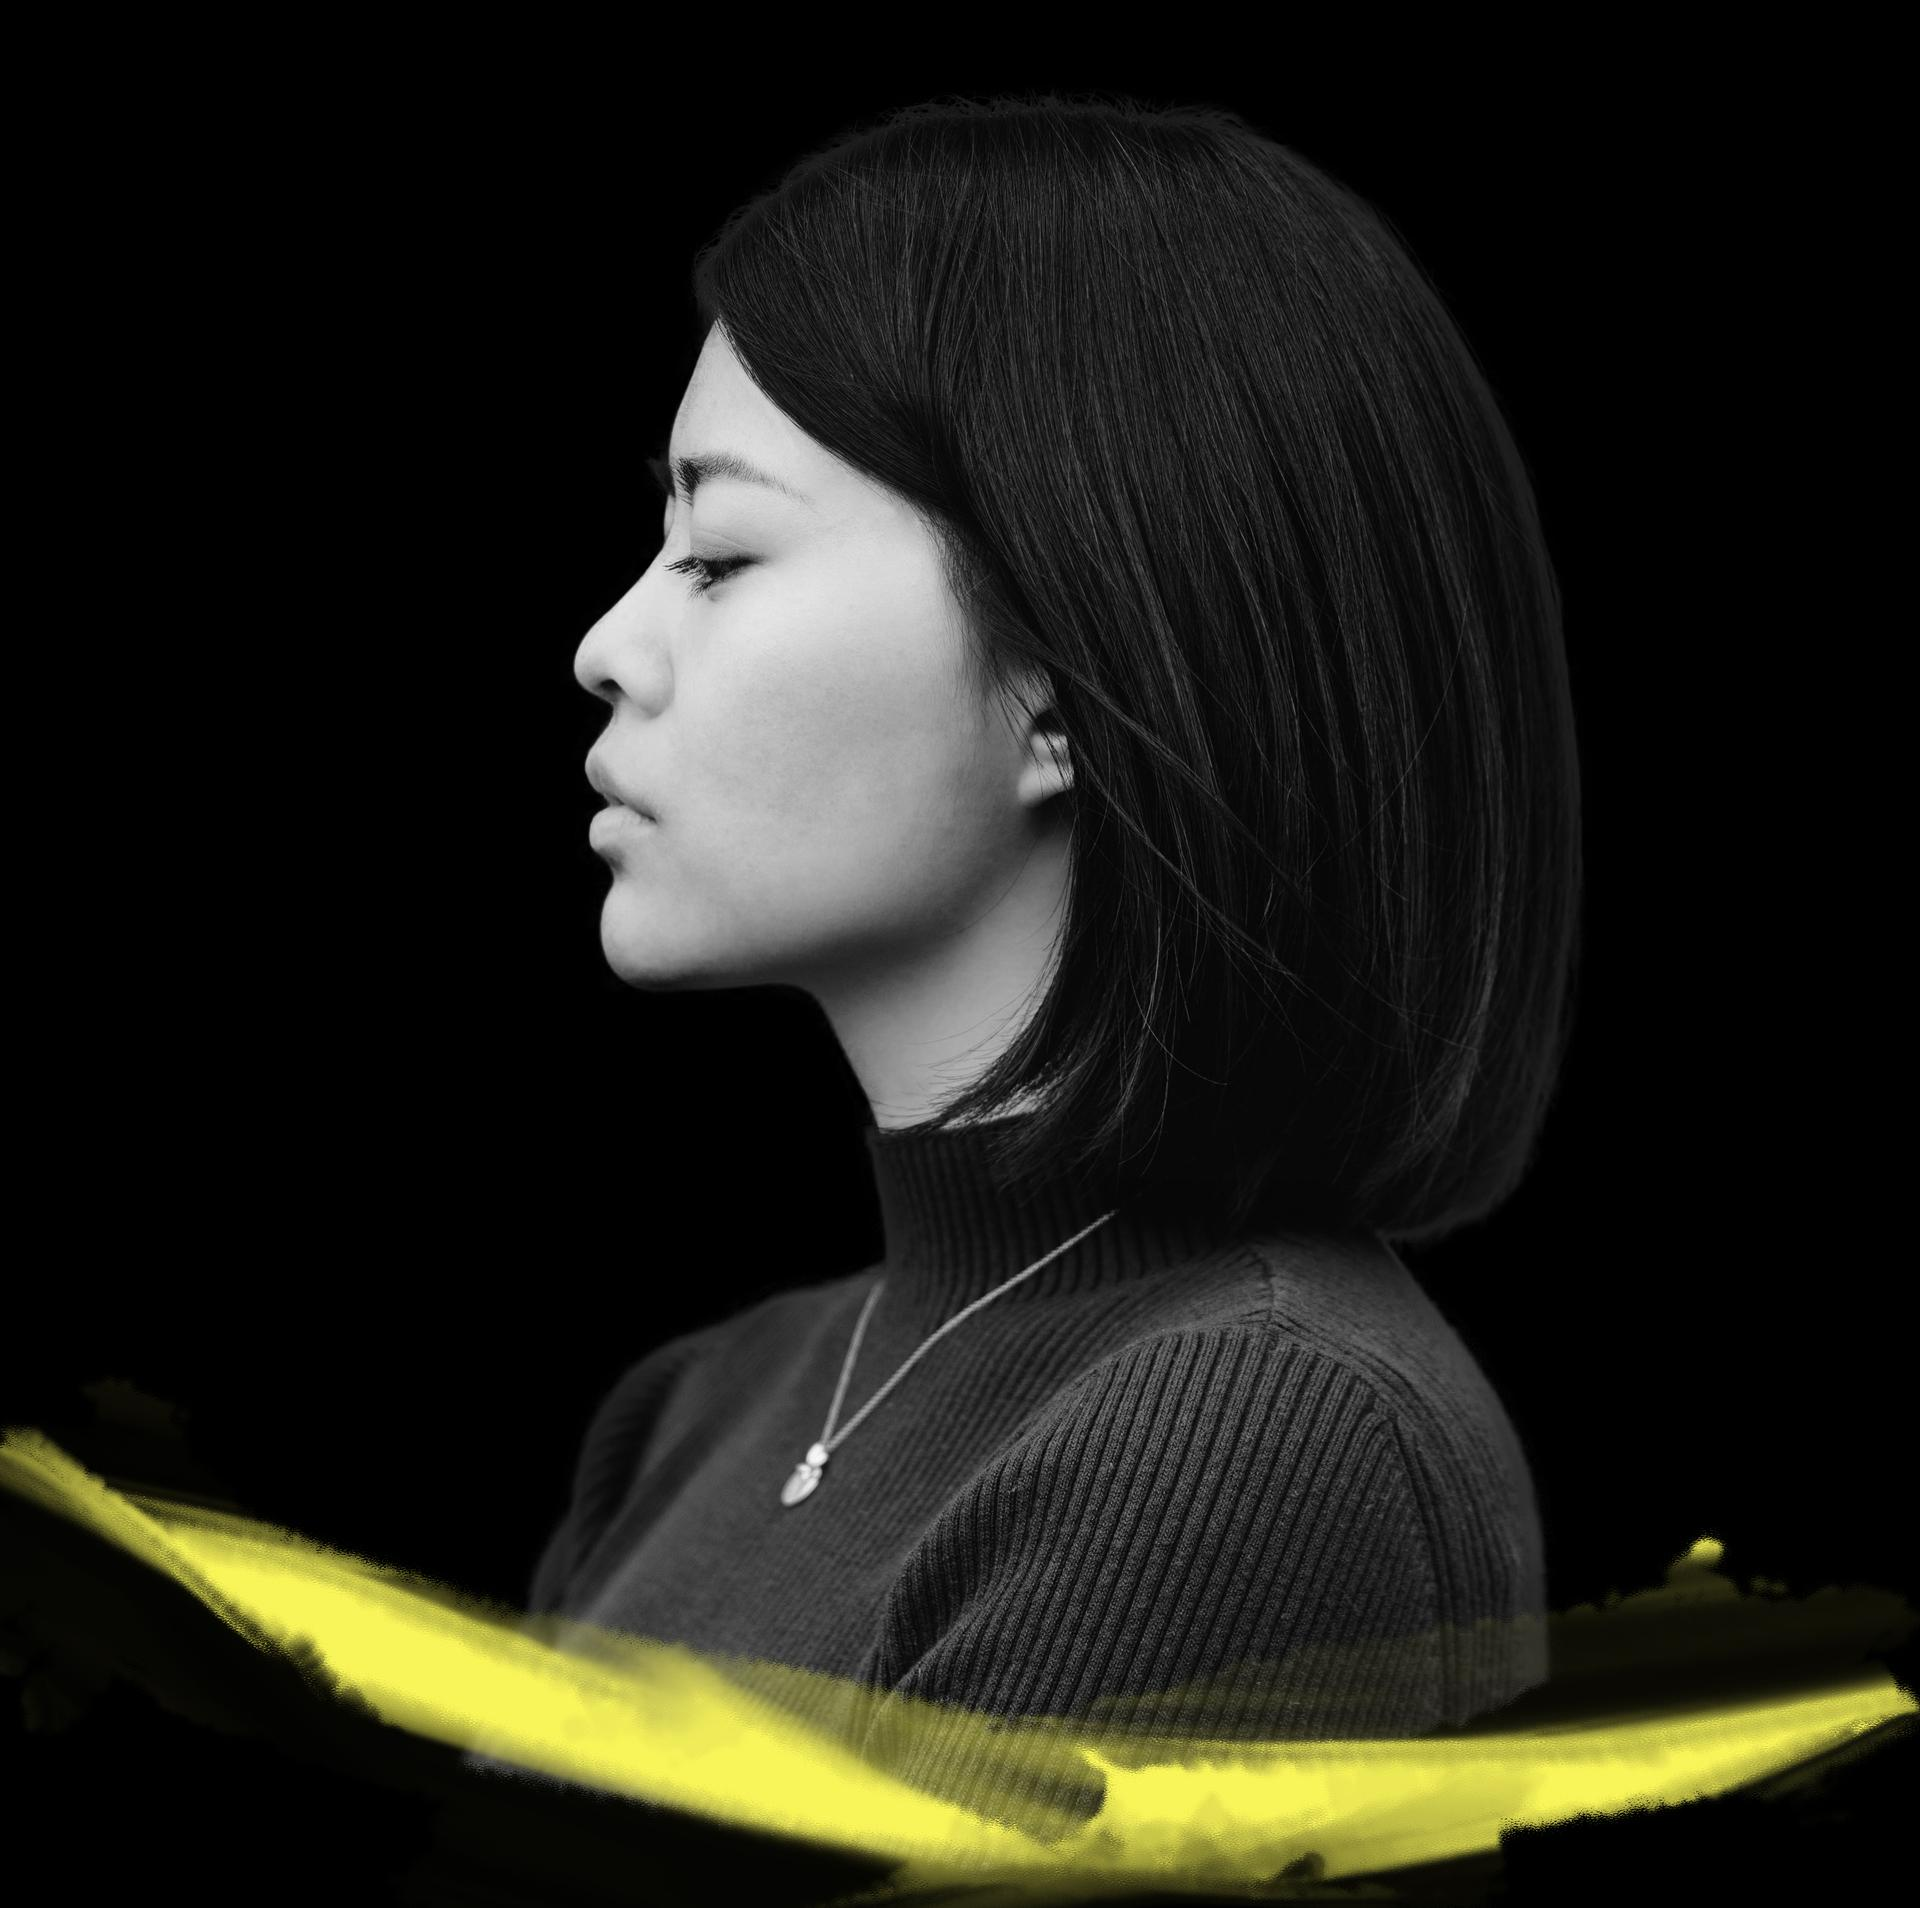 Image of Asian Woman